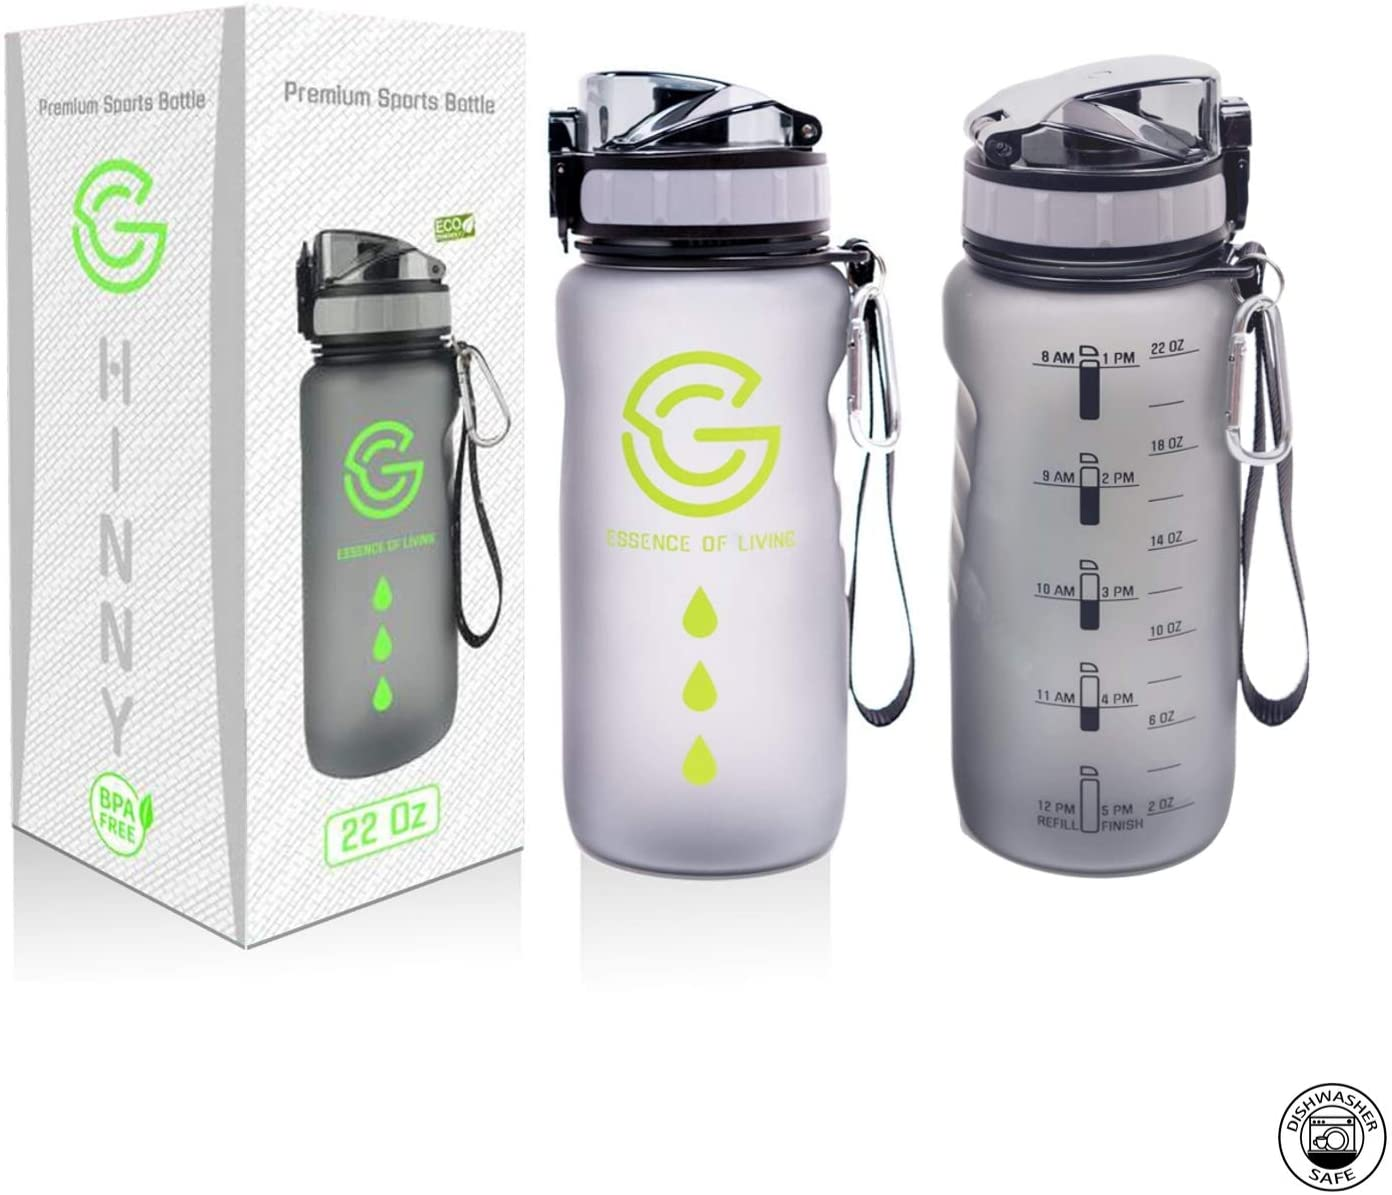 GHINNY Water Bottle Time Marker , 22oz Motivational Sports Hourly Waterbottle, Carabiner 1 Liter BPA Free, Non-Toxin, Leak-Proof, Fast Flow for Health and Fitness